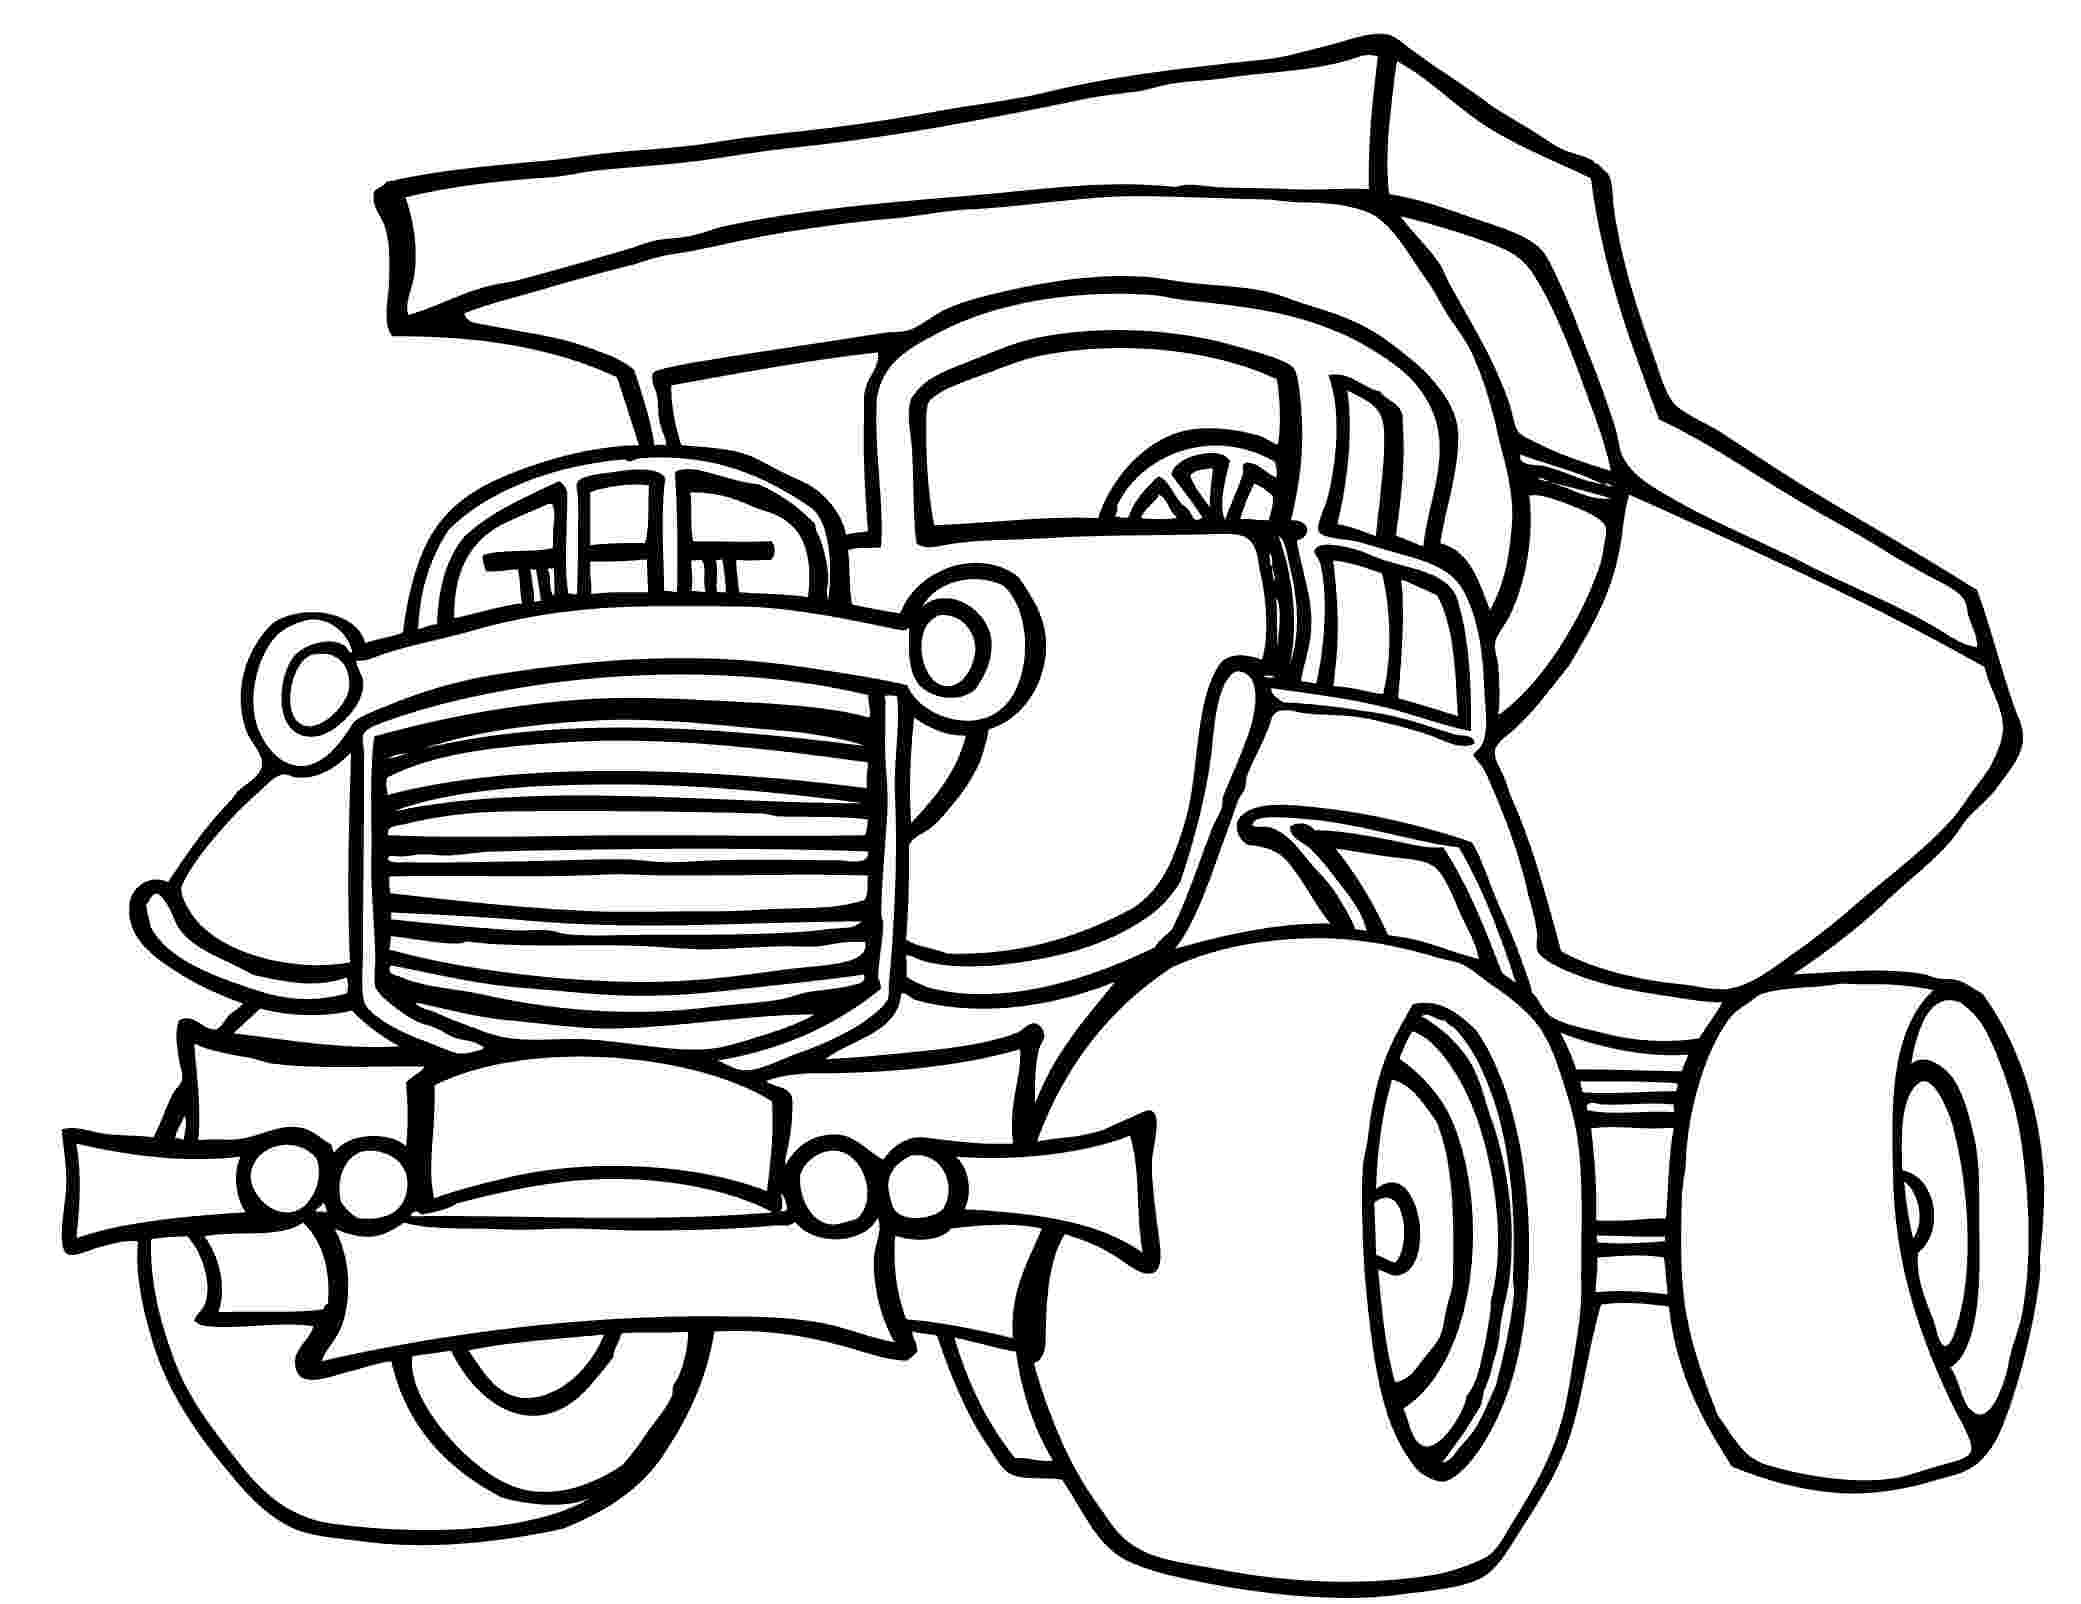 dump truck coloring pages 40 free printable truck coloring pages download dump truck coloring pages